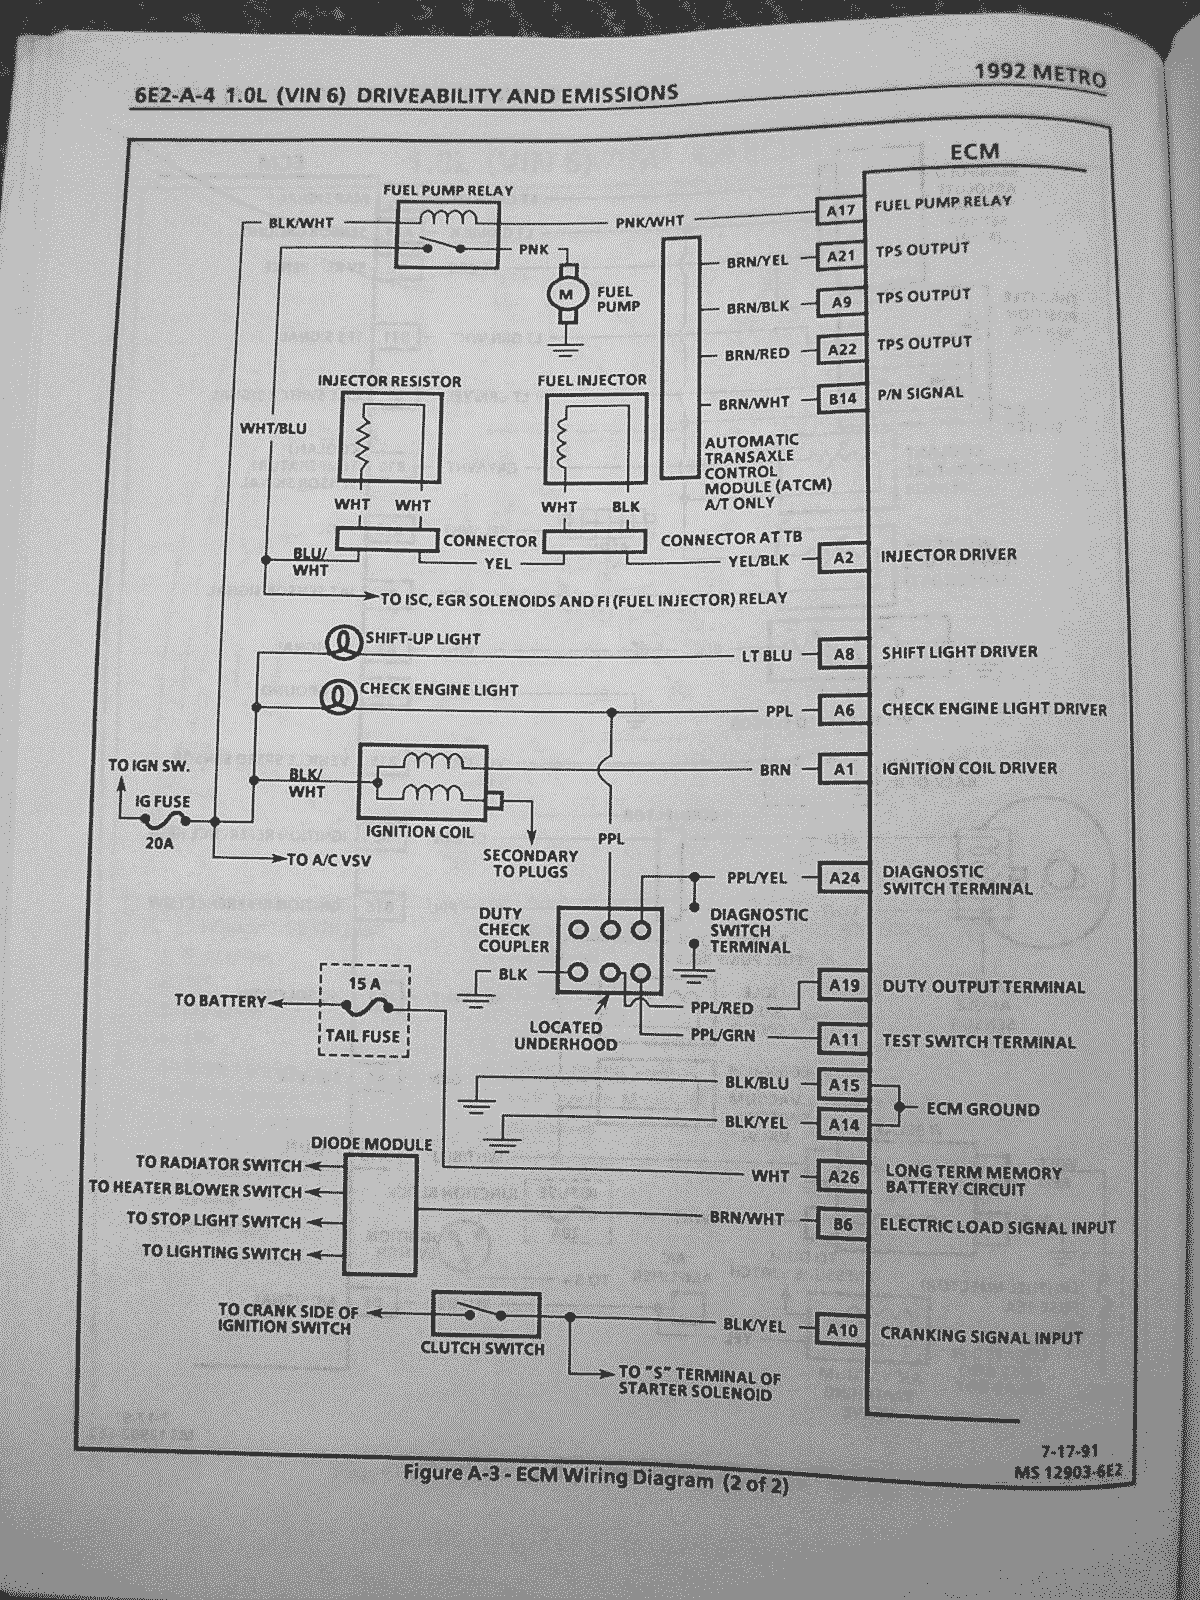 6e2 a 4 geo metro and suzuki swift wiring diagrams metroxfi com 1992 Geo Prizm Wiring Diagram at reclaimingppi.co